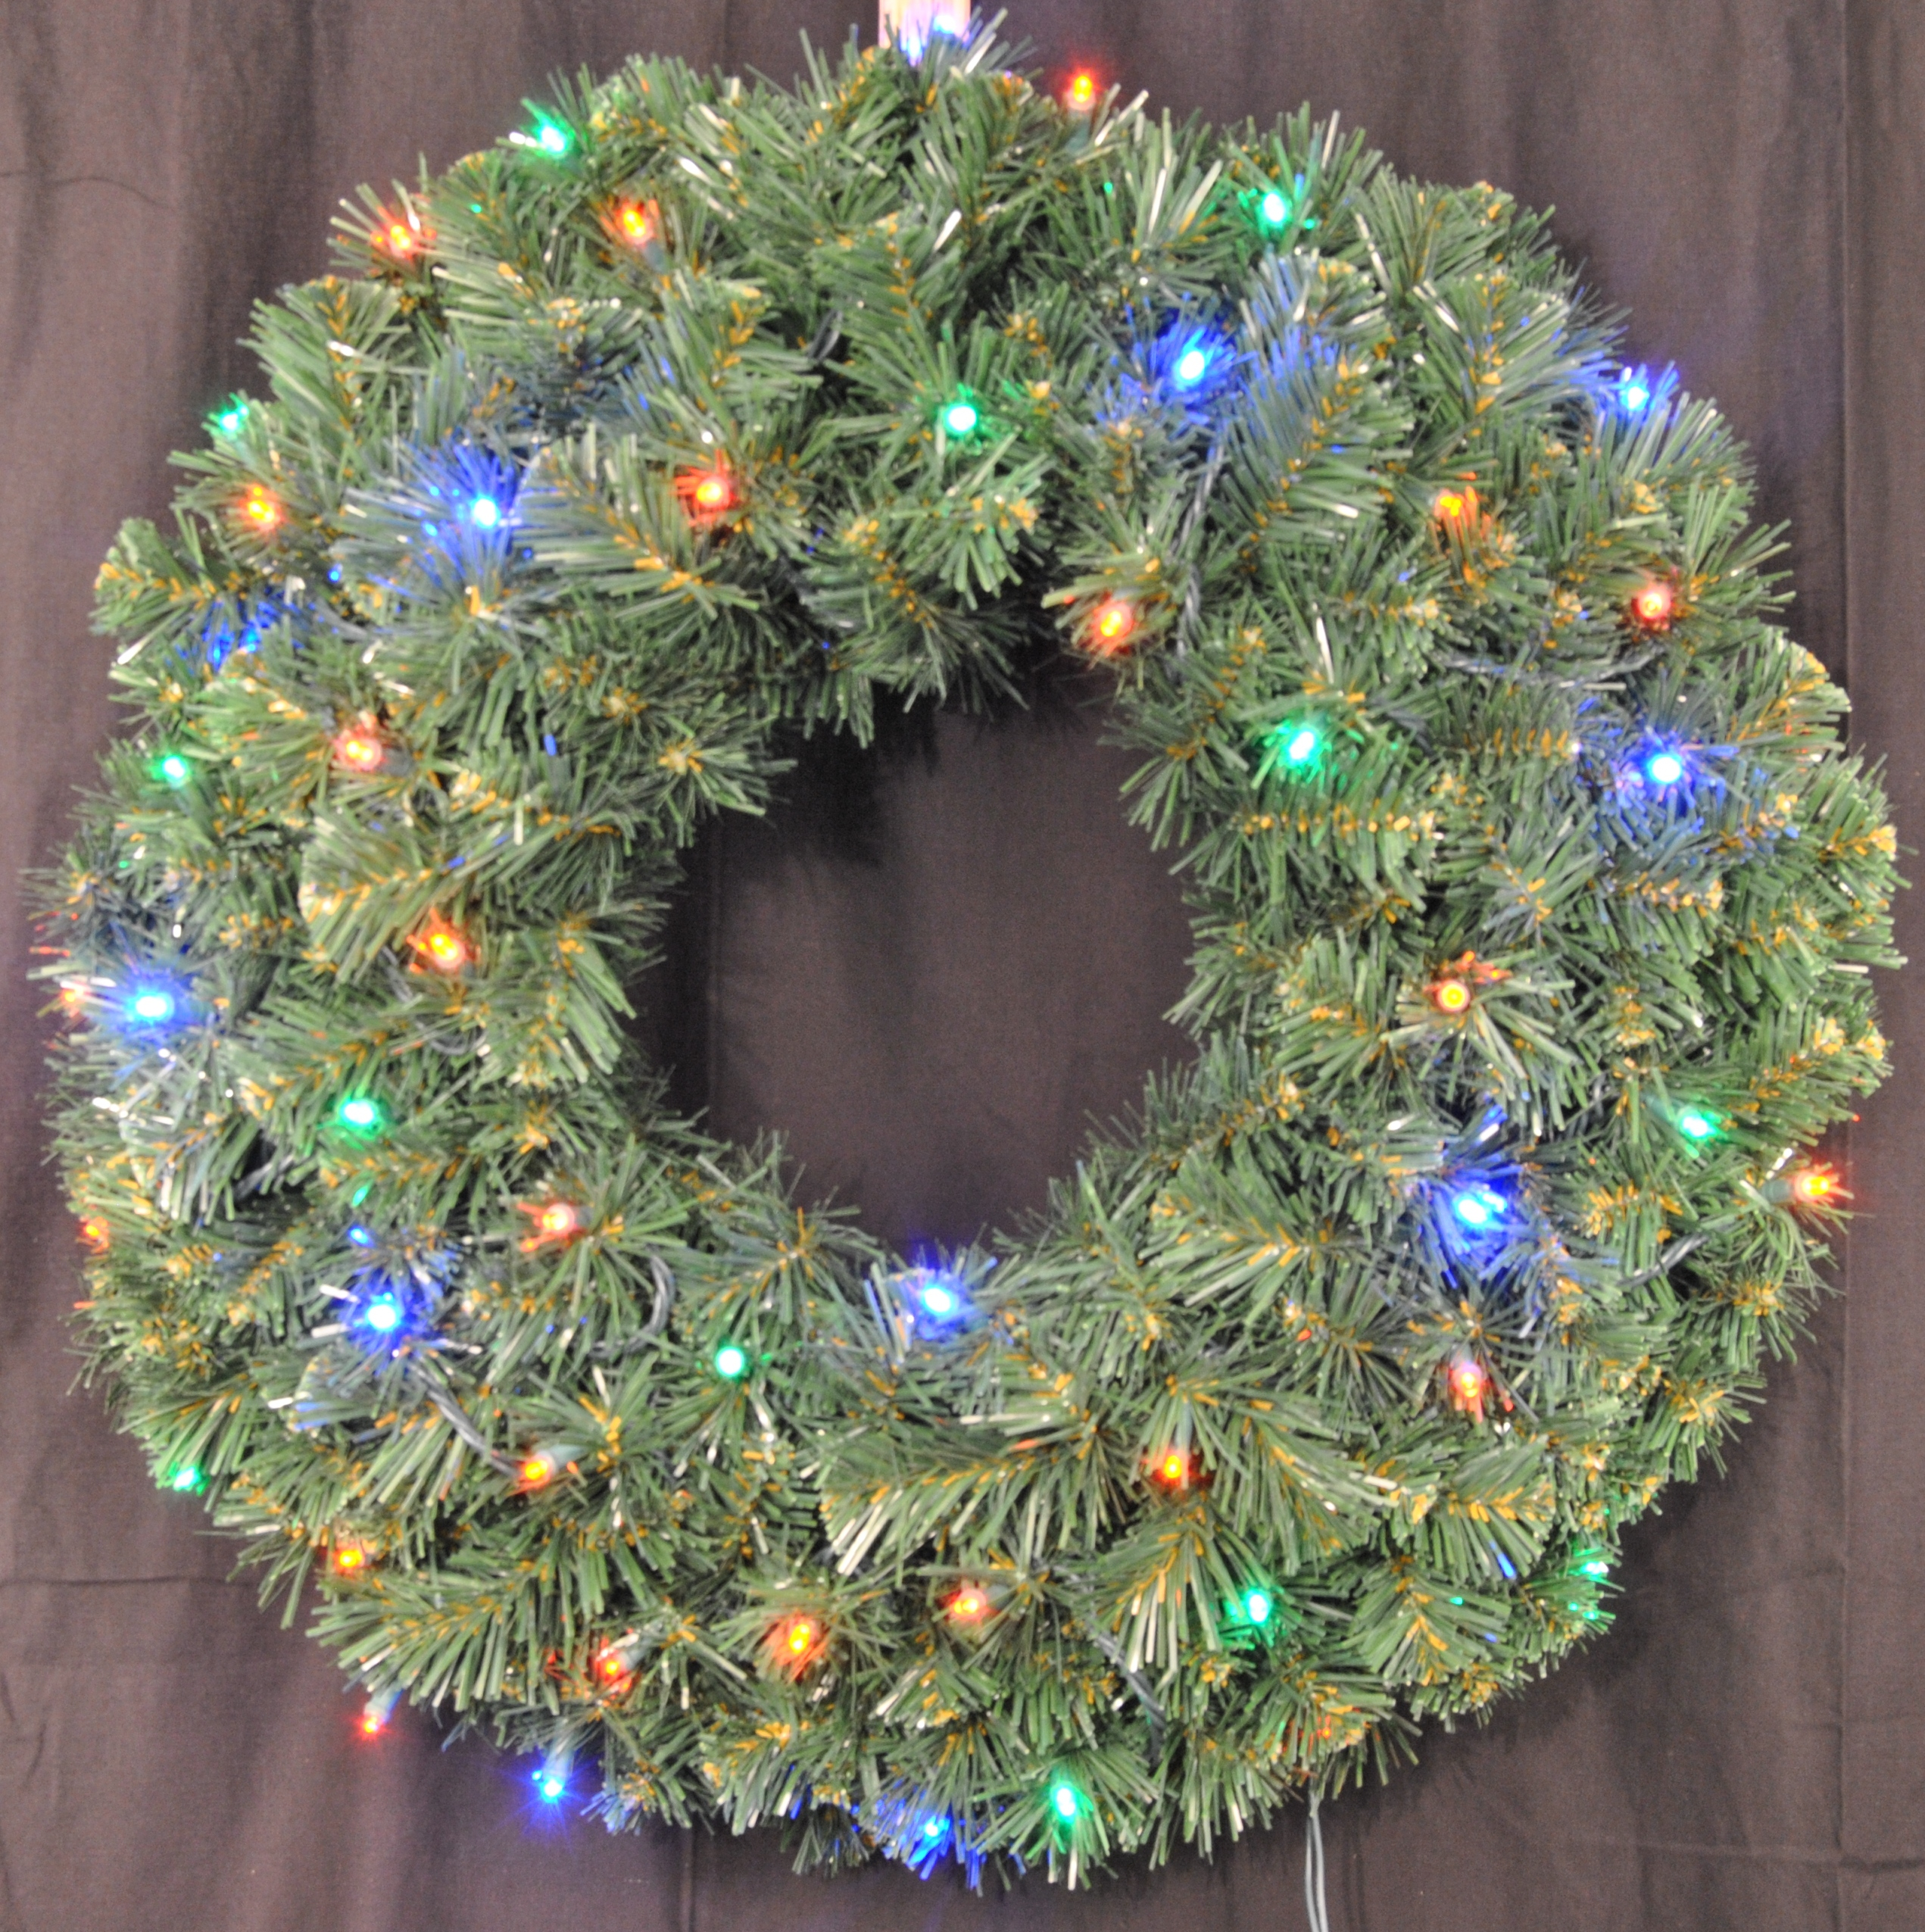 3' Battery Operated Sequoia Wreath Pre-Lit with Multi-Color LEDs